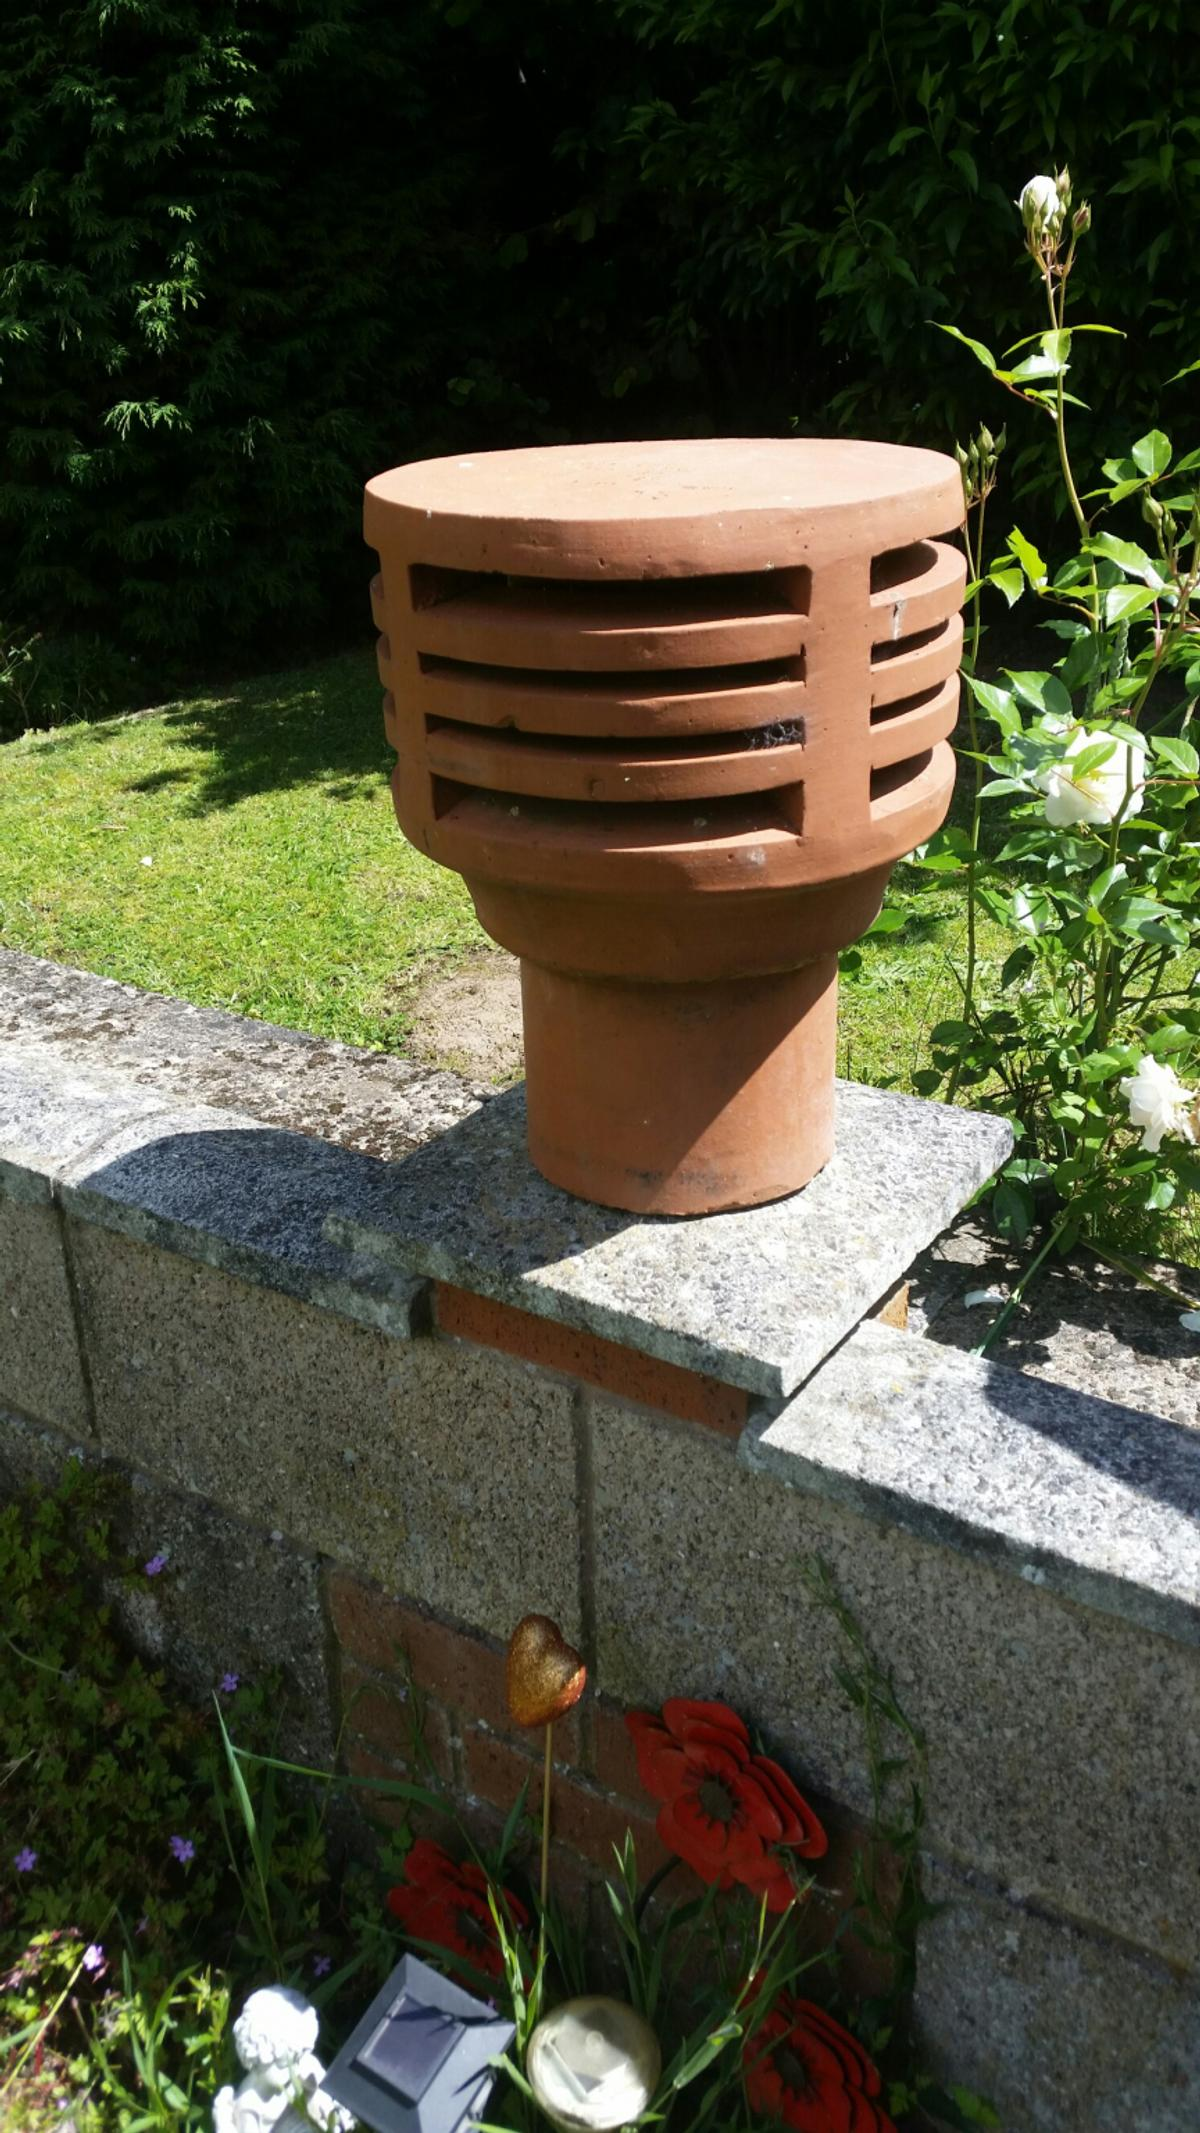 Tericota chimney pot never used could be a garden ornament, or upside down a plant pot, or for the real thing even. got to go.